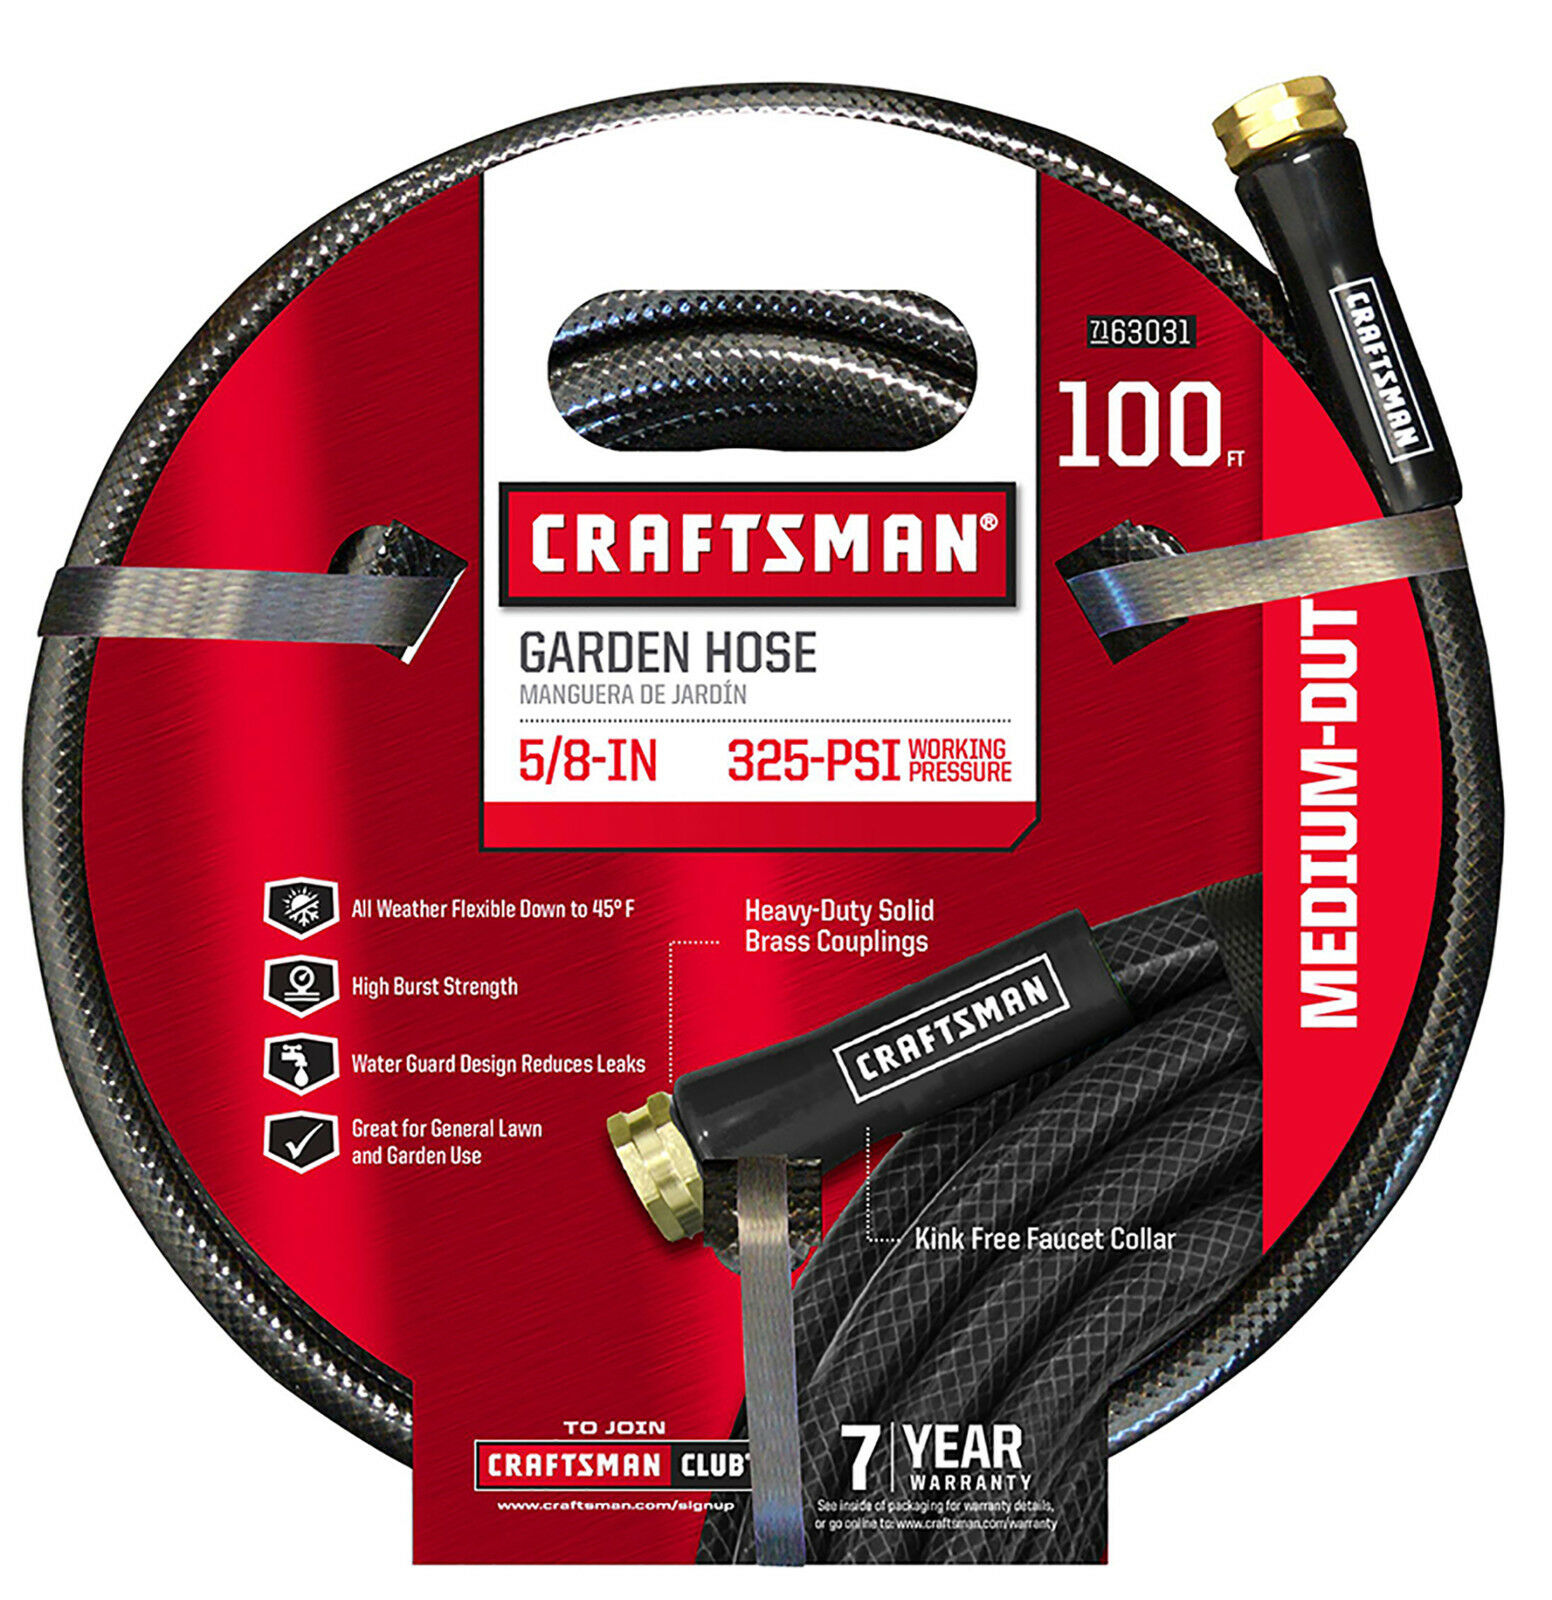 Craftsman Garden Hose 5/8 Inch 100 ft Black Medium Duty Bras